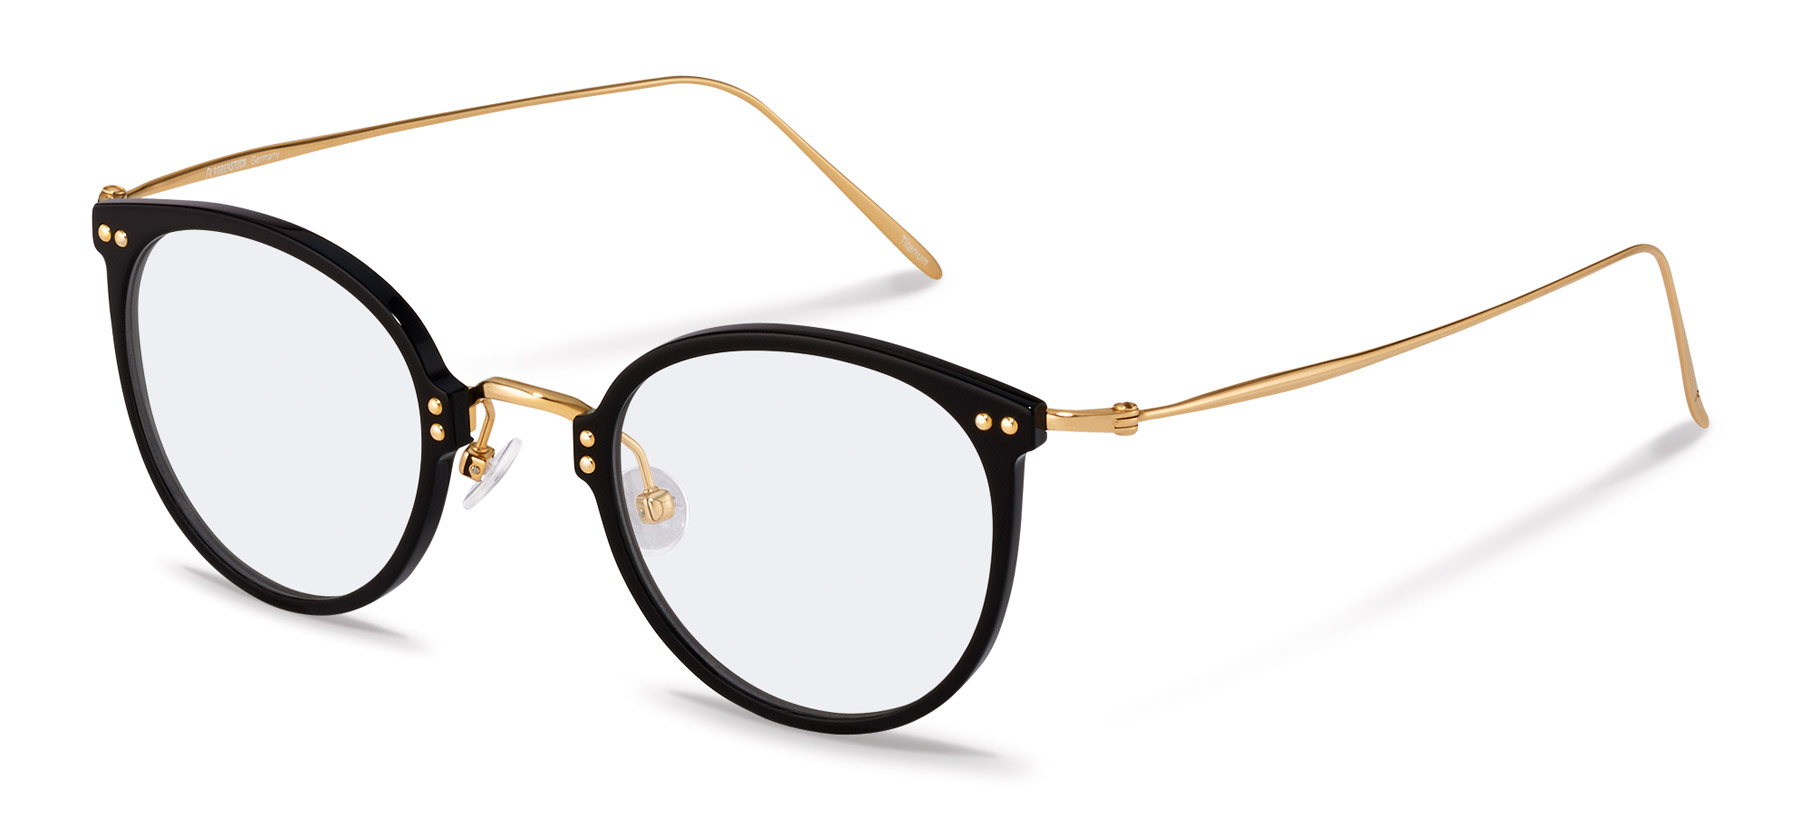 Rodenstock-Correction frame-R7079-black/gold